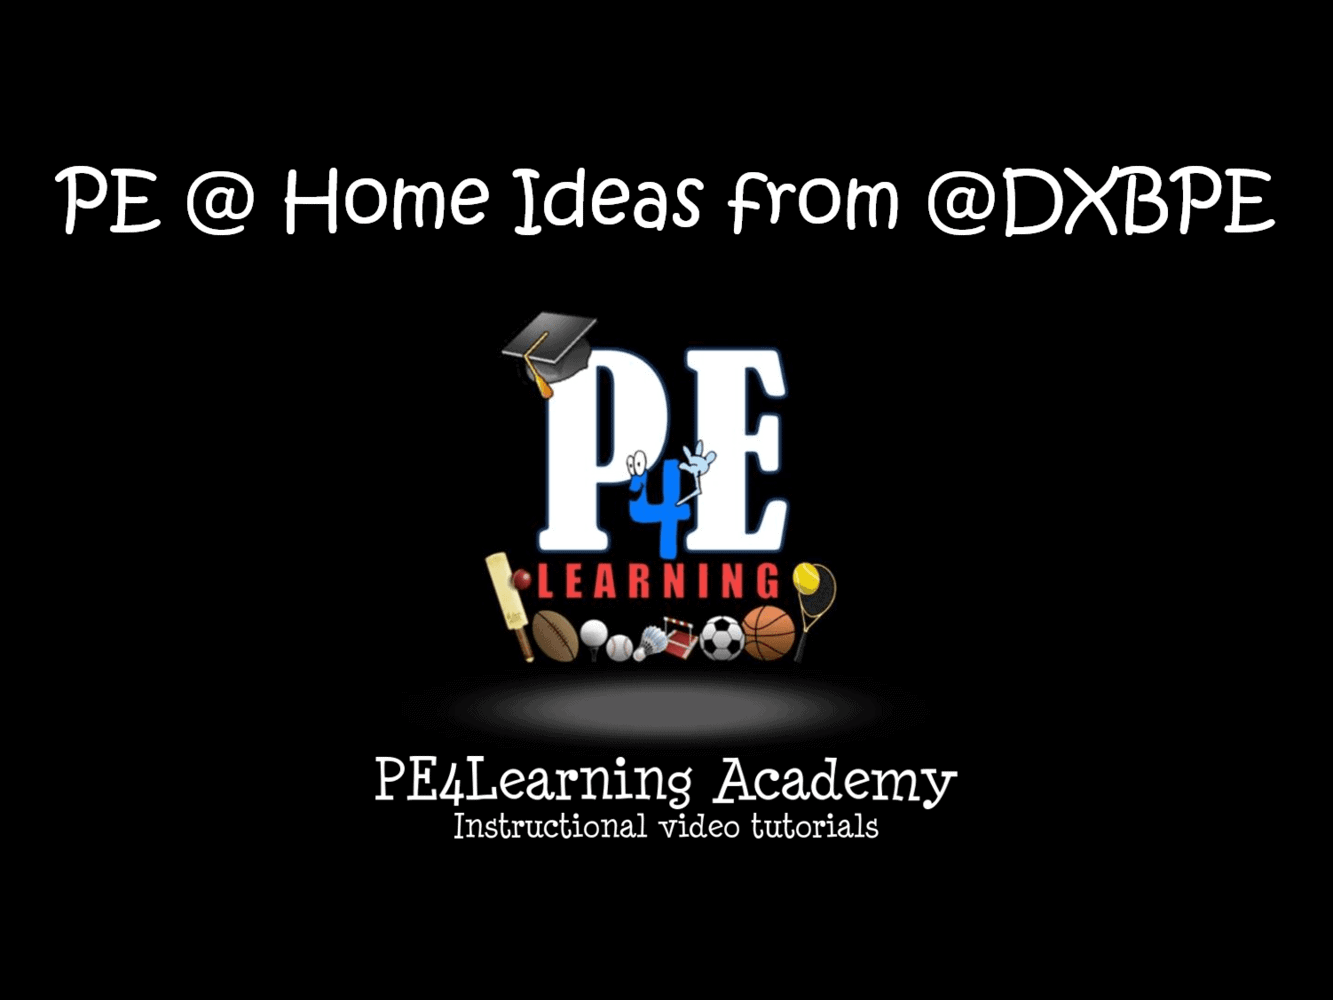 PE @ Home Ideas from @DXBPE